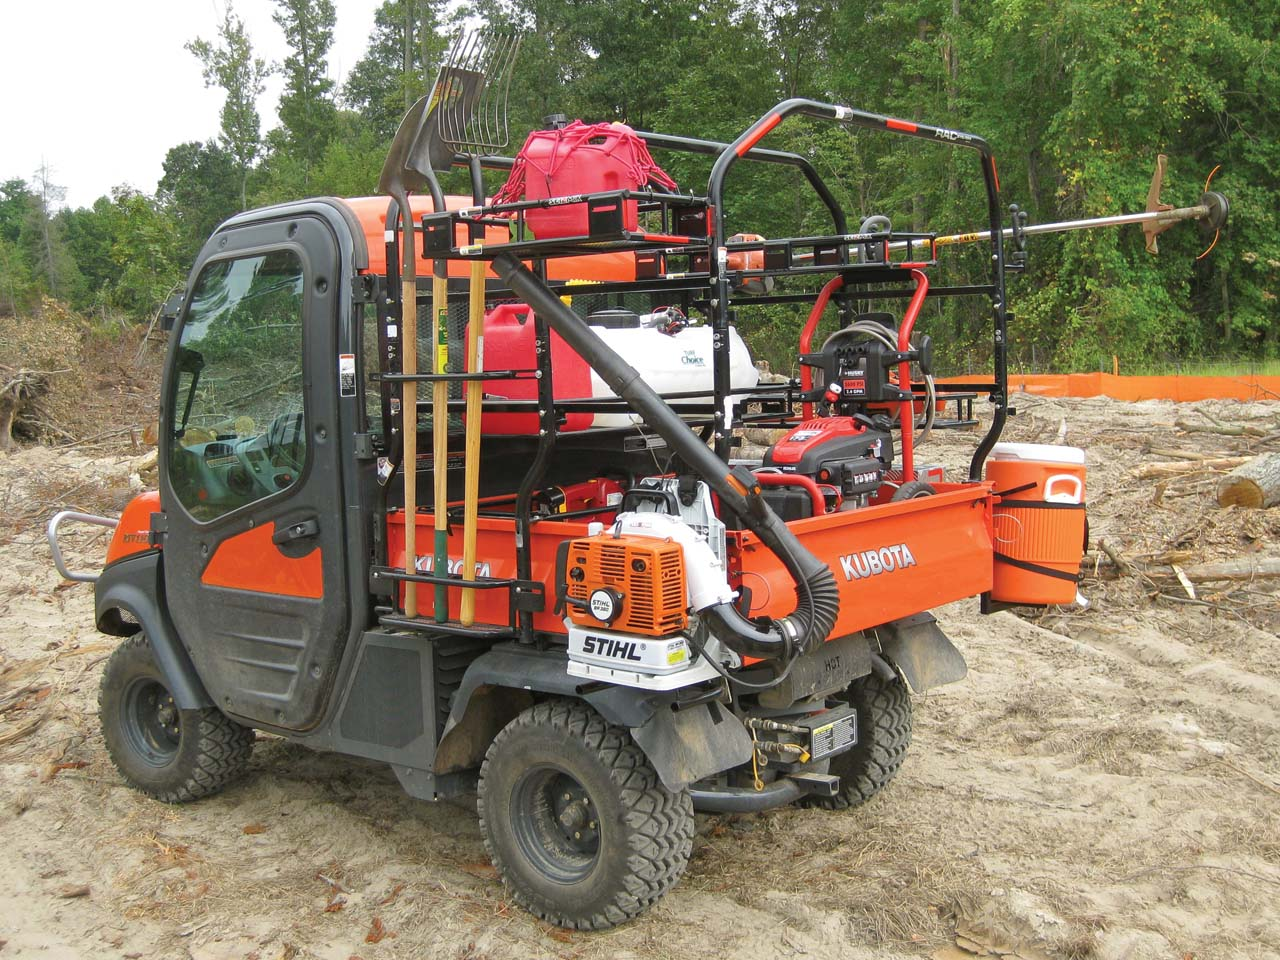 Kubota rtv-900 photo - 2